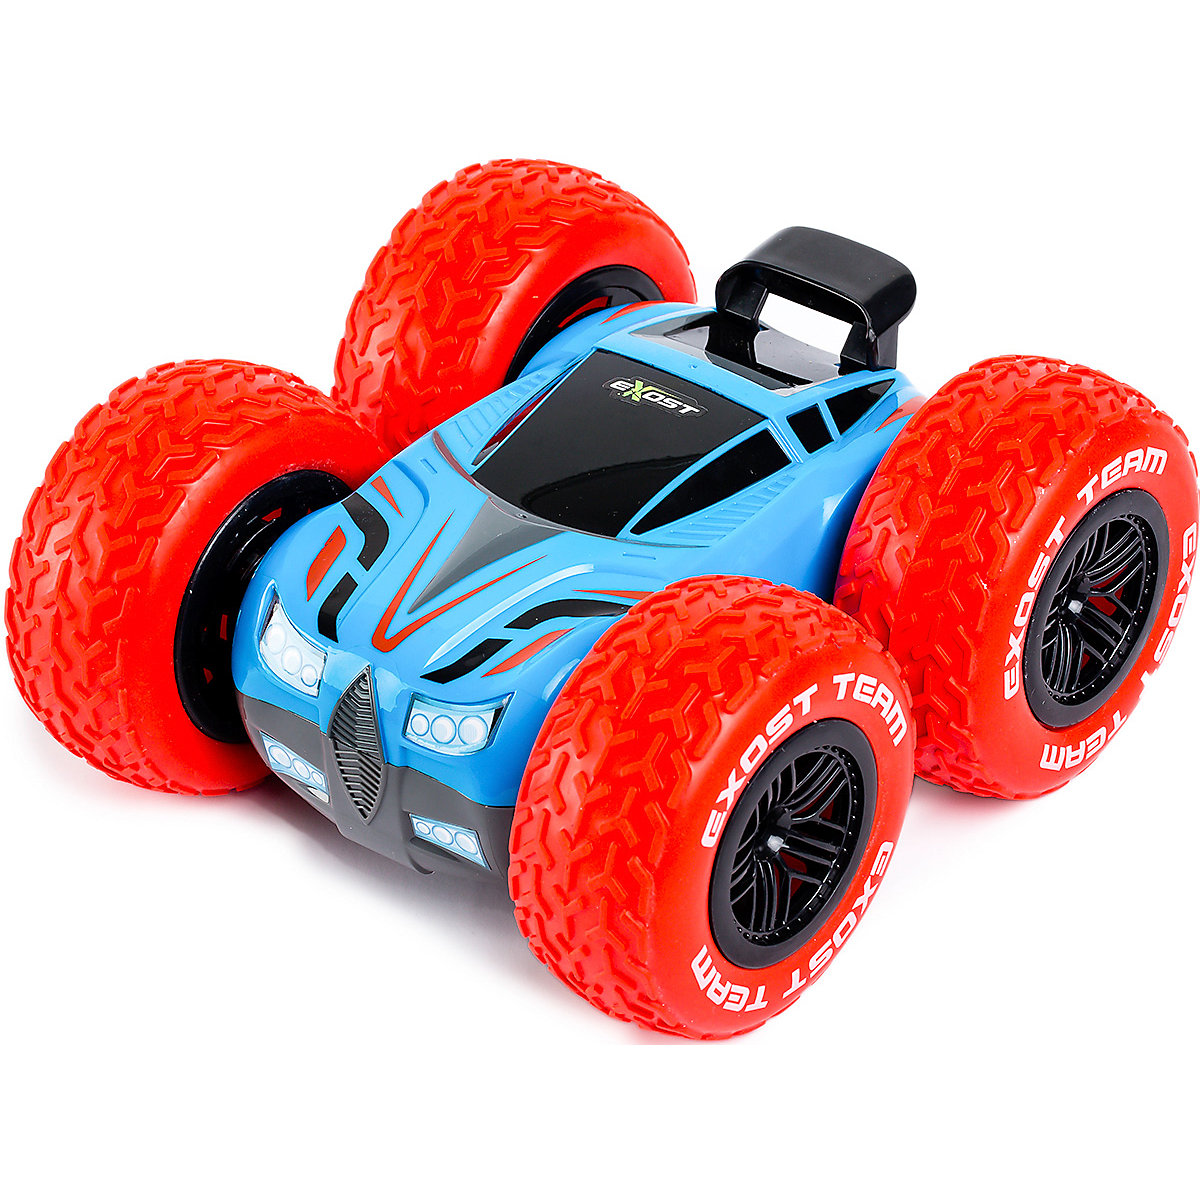 Silverlit RC Cars 10077713 Remote Control Toys radio-controlled toy games children Kids car spare mr rc m 1503 servo for remote control helicopter car boat